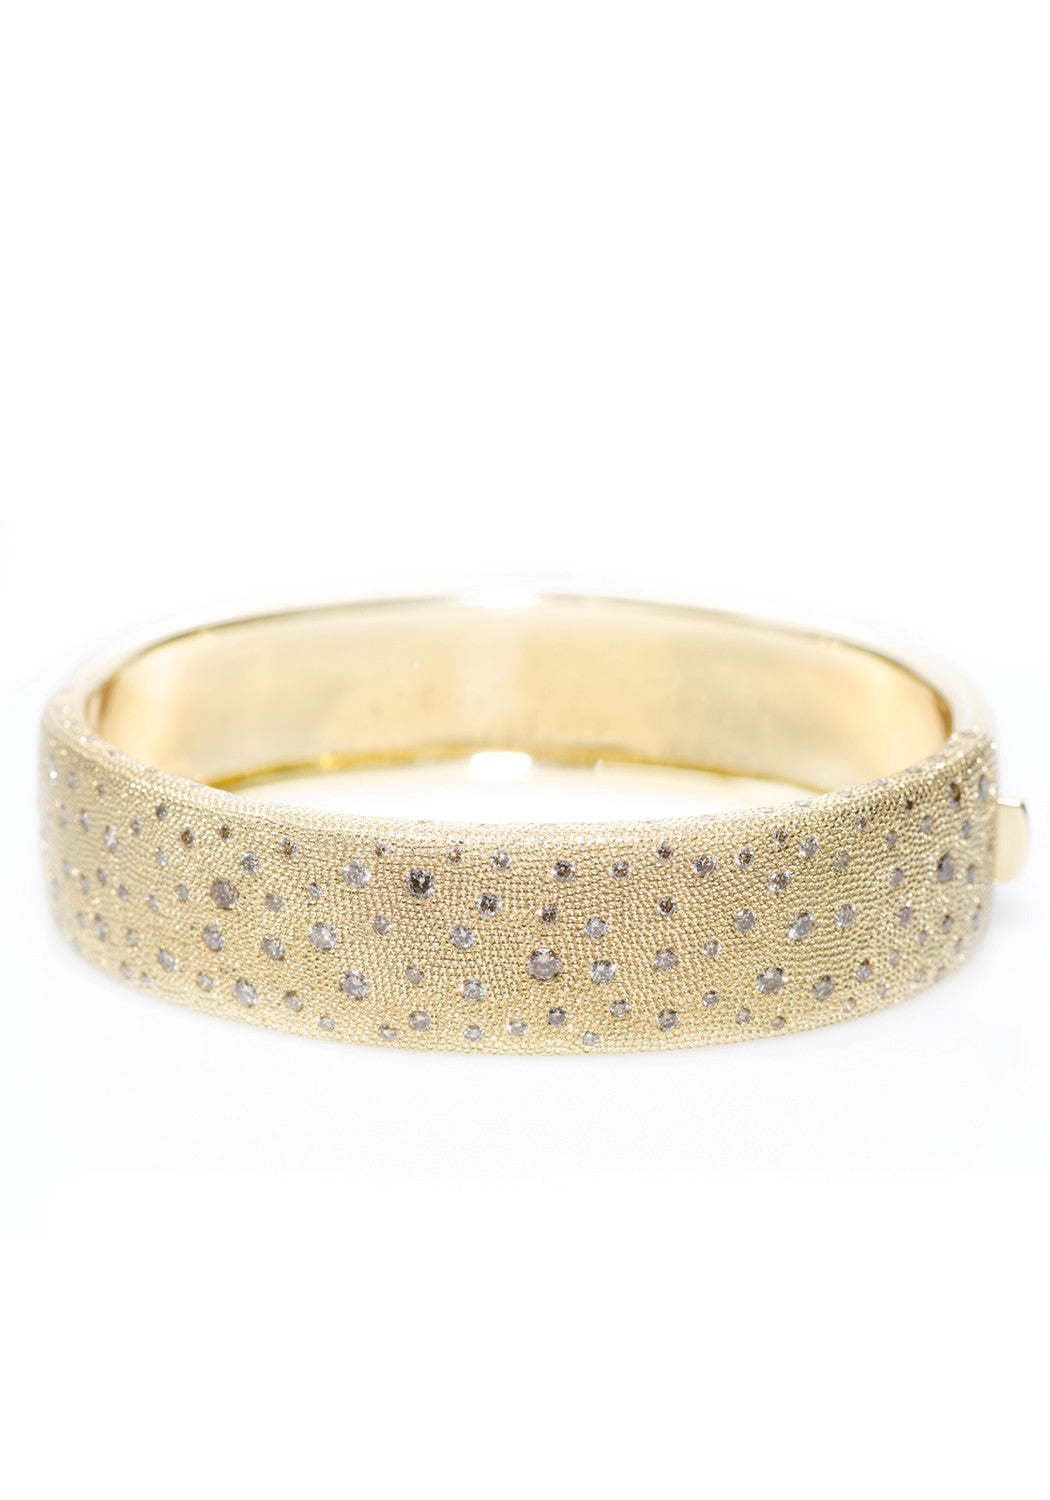 "Garavelli ""Dune"" Gold 3.08ctw Diamond Bangle"